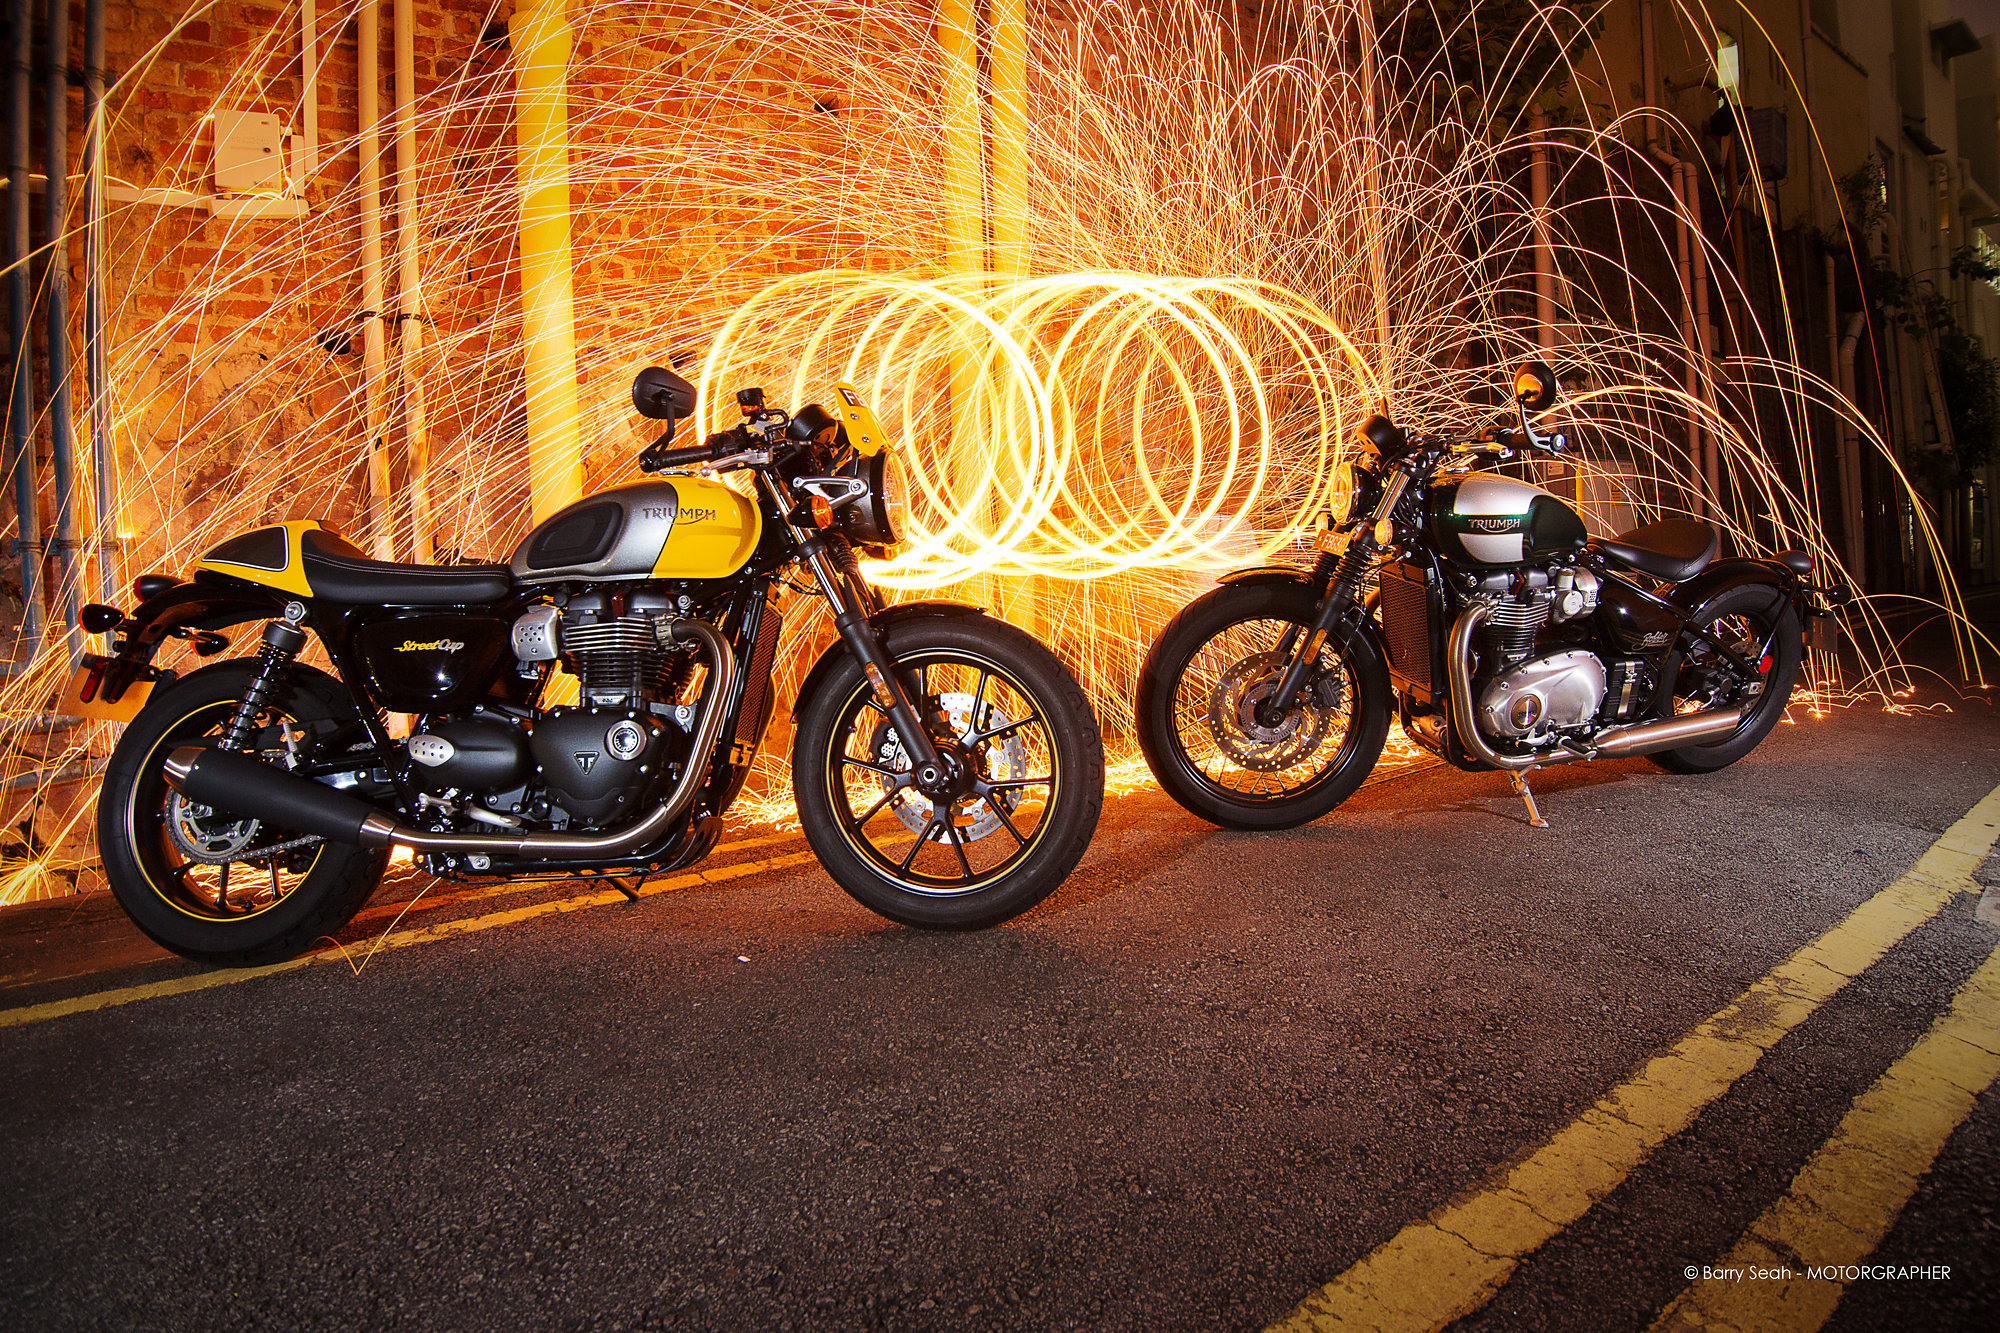 SteelWool_Bobber_StreetCup_PPI_3649_04